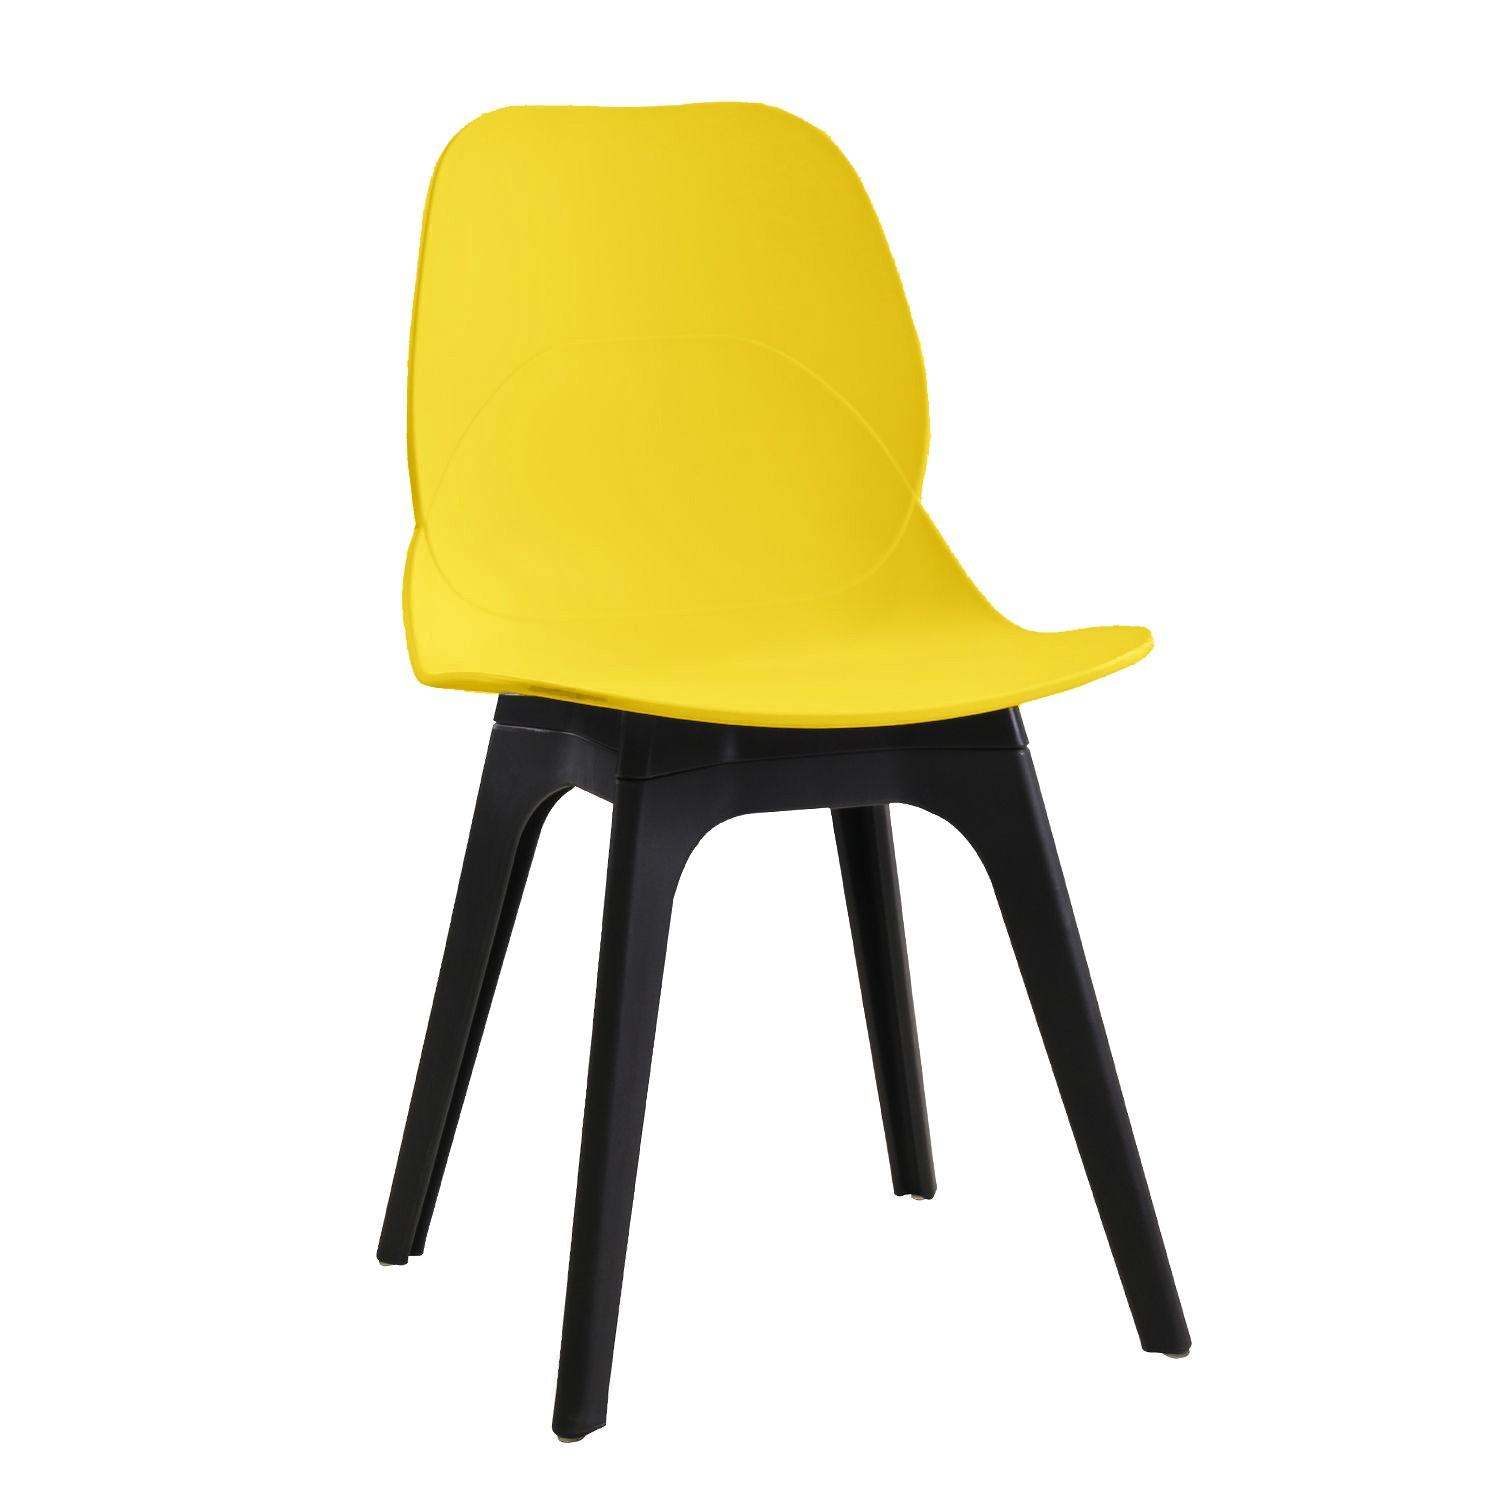 Chair ARIES, Polypropylene Black And Yellow